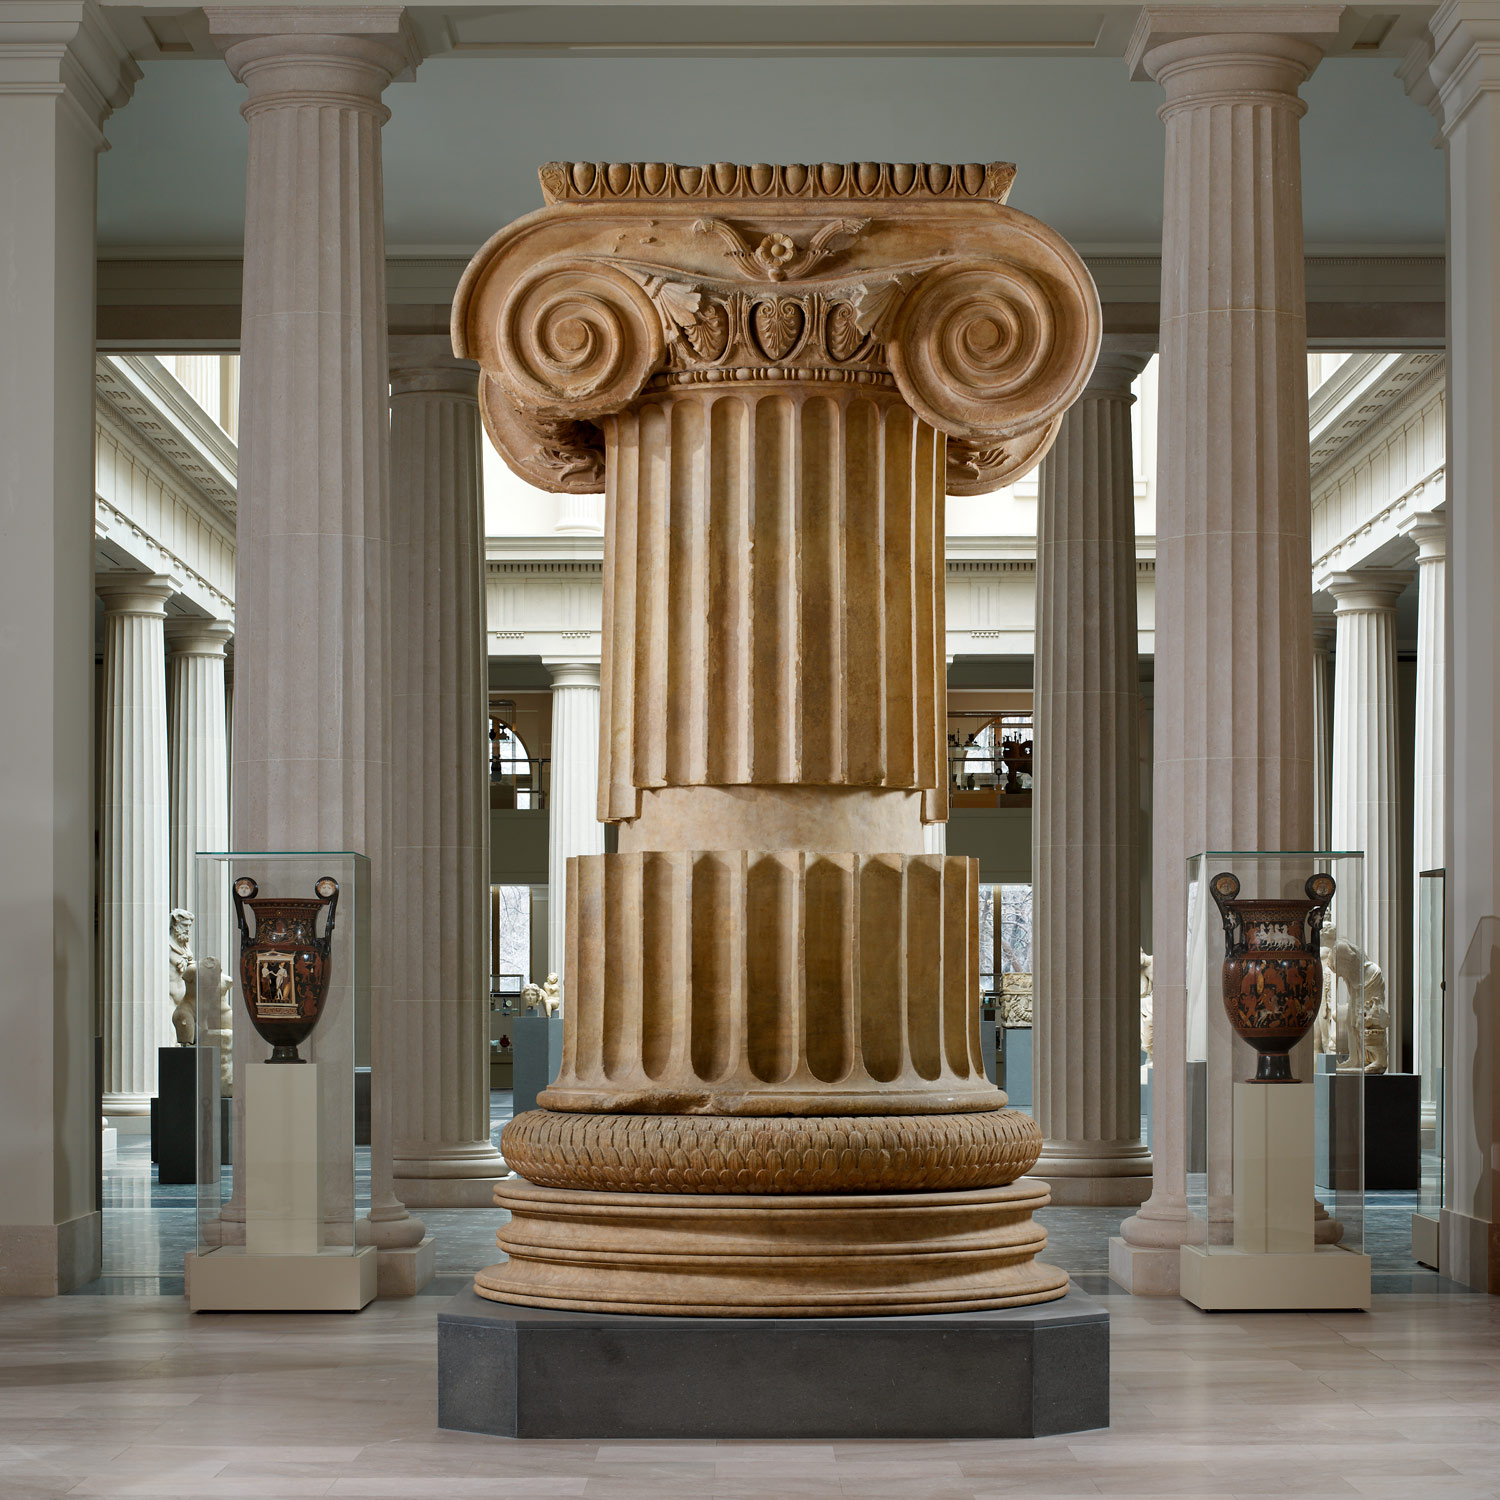 eastern religions in the r world essay heilbrunn timeline marble column from the temple of artemis at sardis